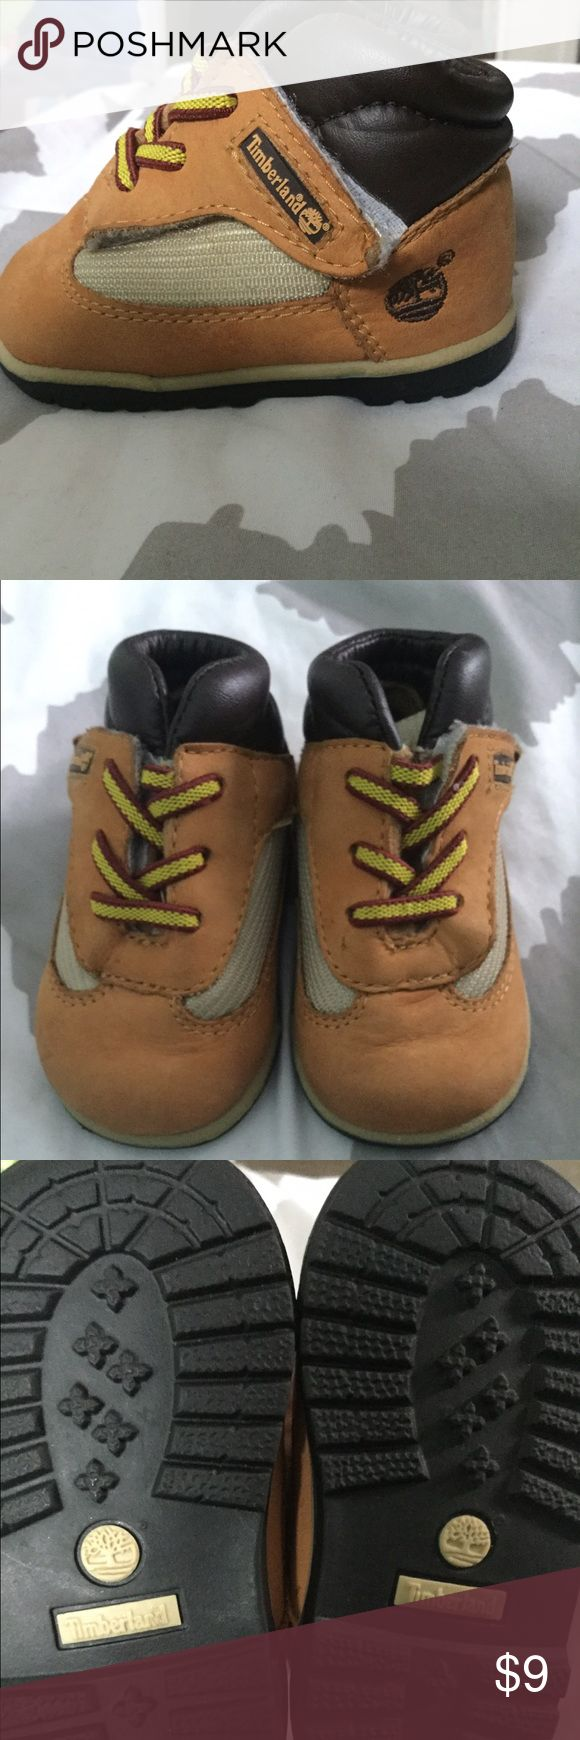 Infant timberland boots Infant size 1 c boots in fair condition normal wear and tear Timberland Shoes Boots